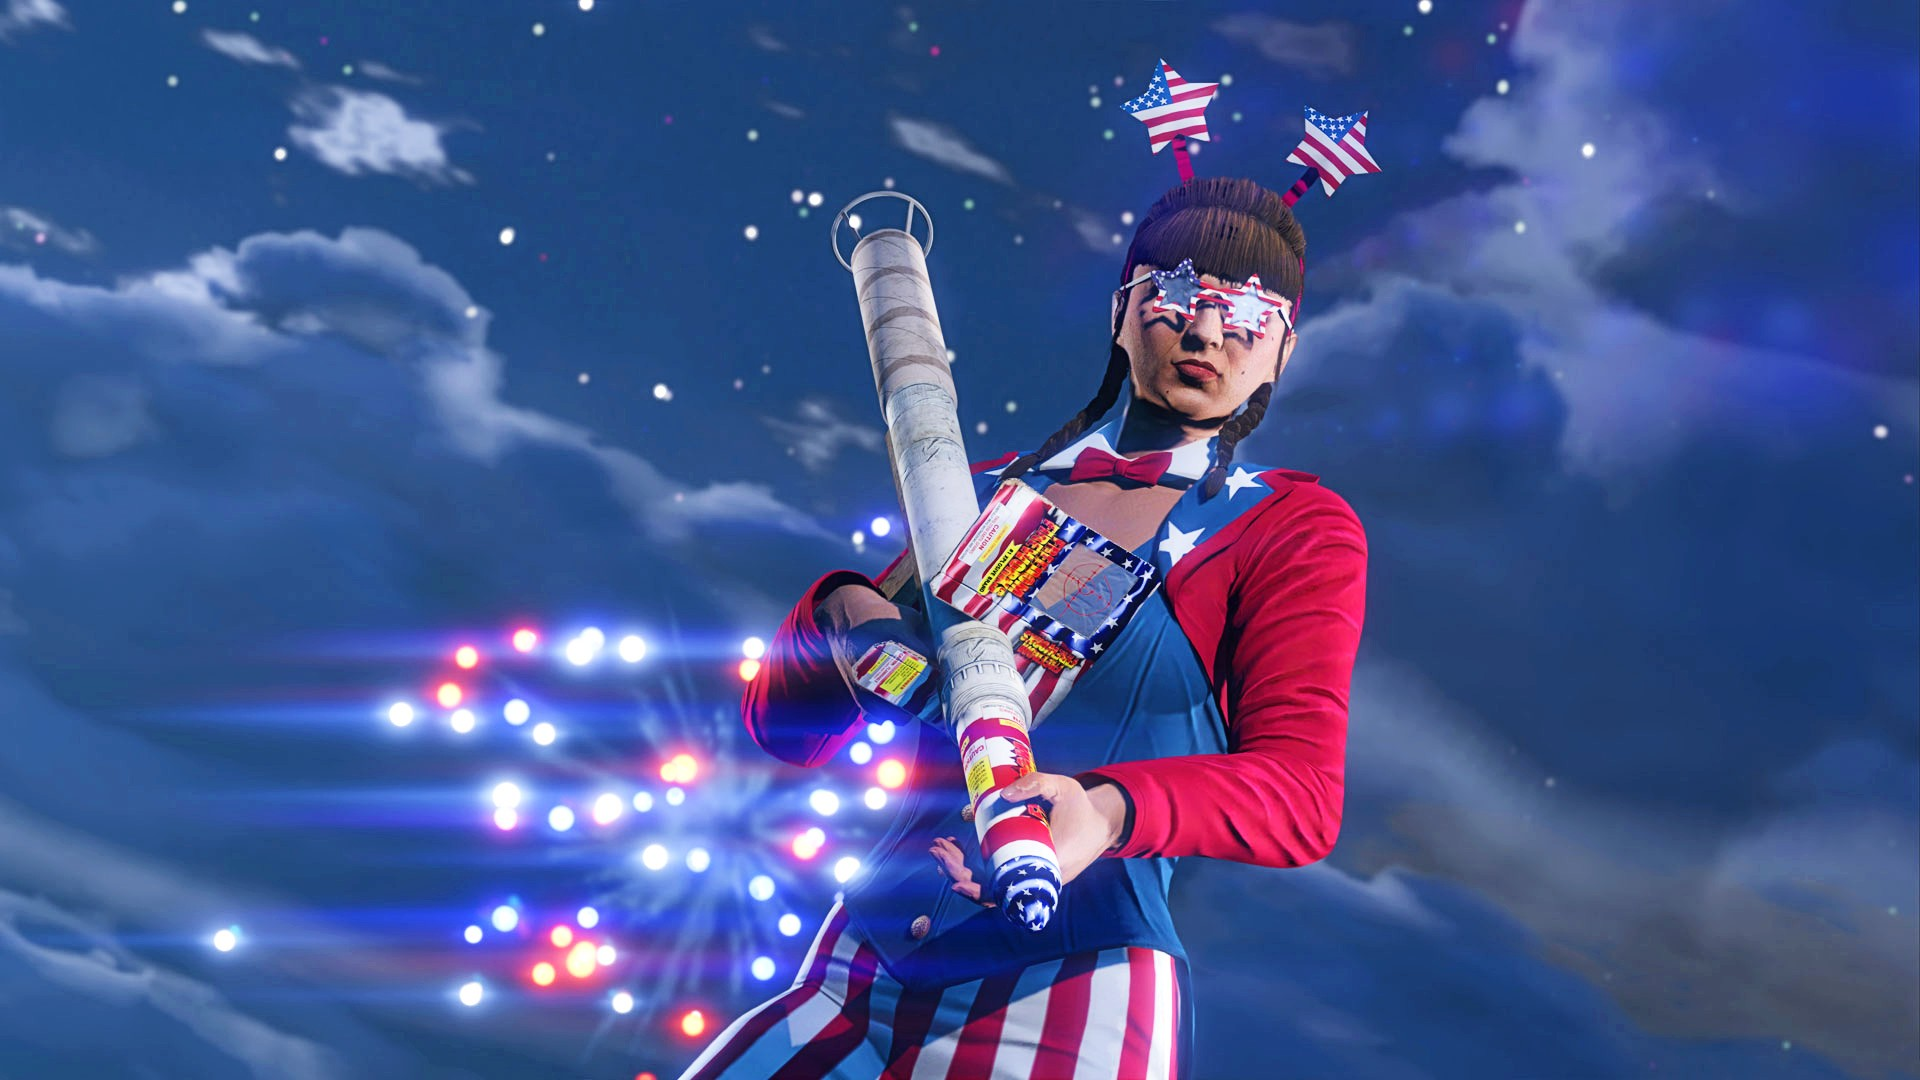 GTA Online's weekly update contains heaps of Independence Day goodies